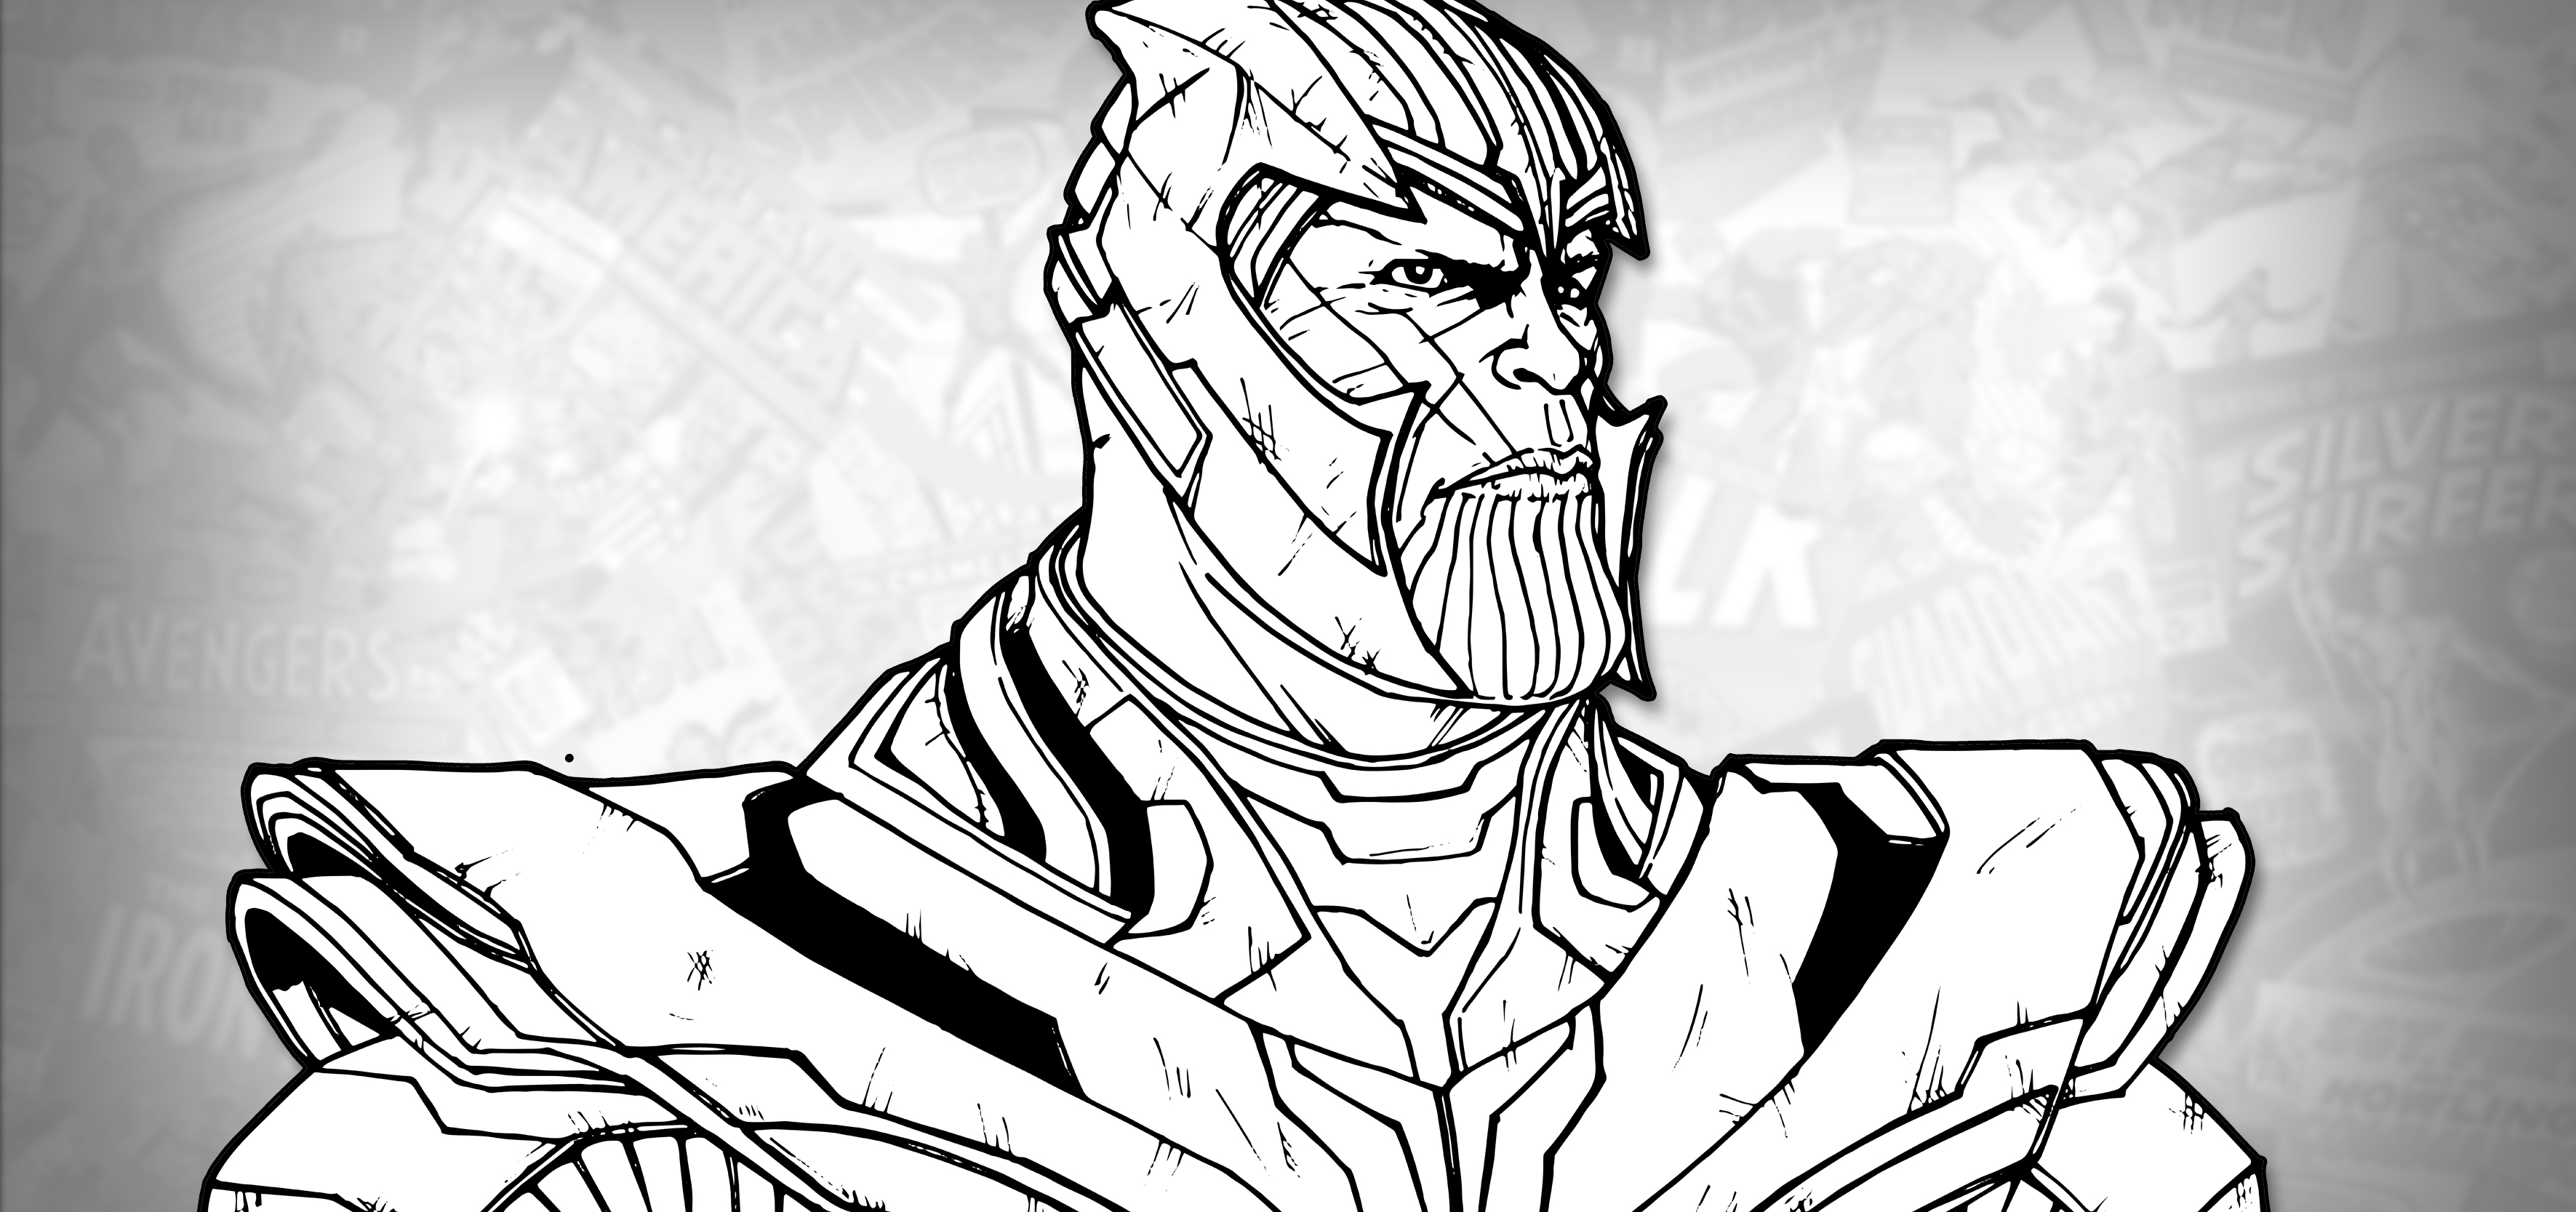 avengers endgame thanos coloring pages how to draw thanos avengers endgame drawing tutorial avengers coloring thanos endgame pages